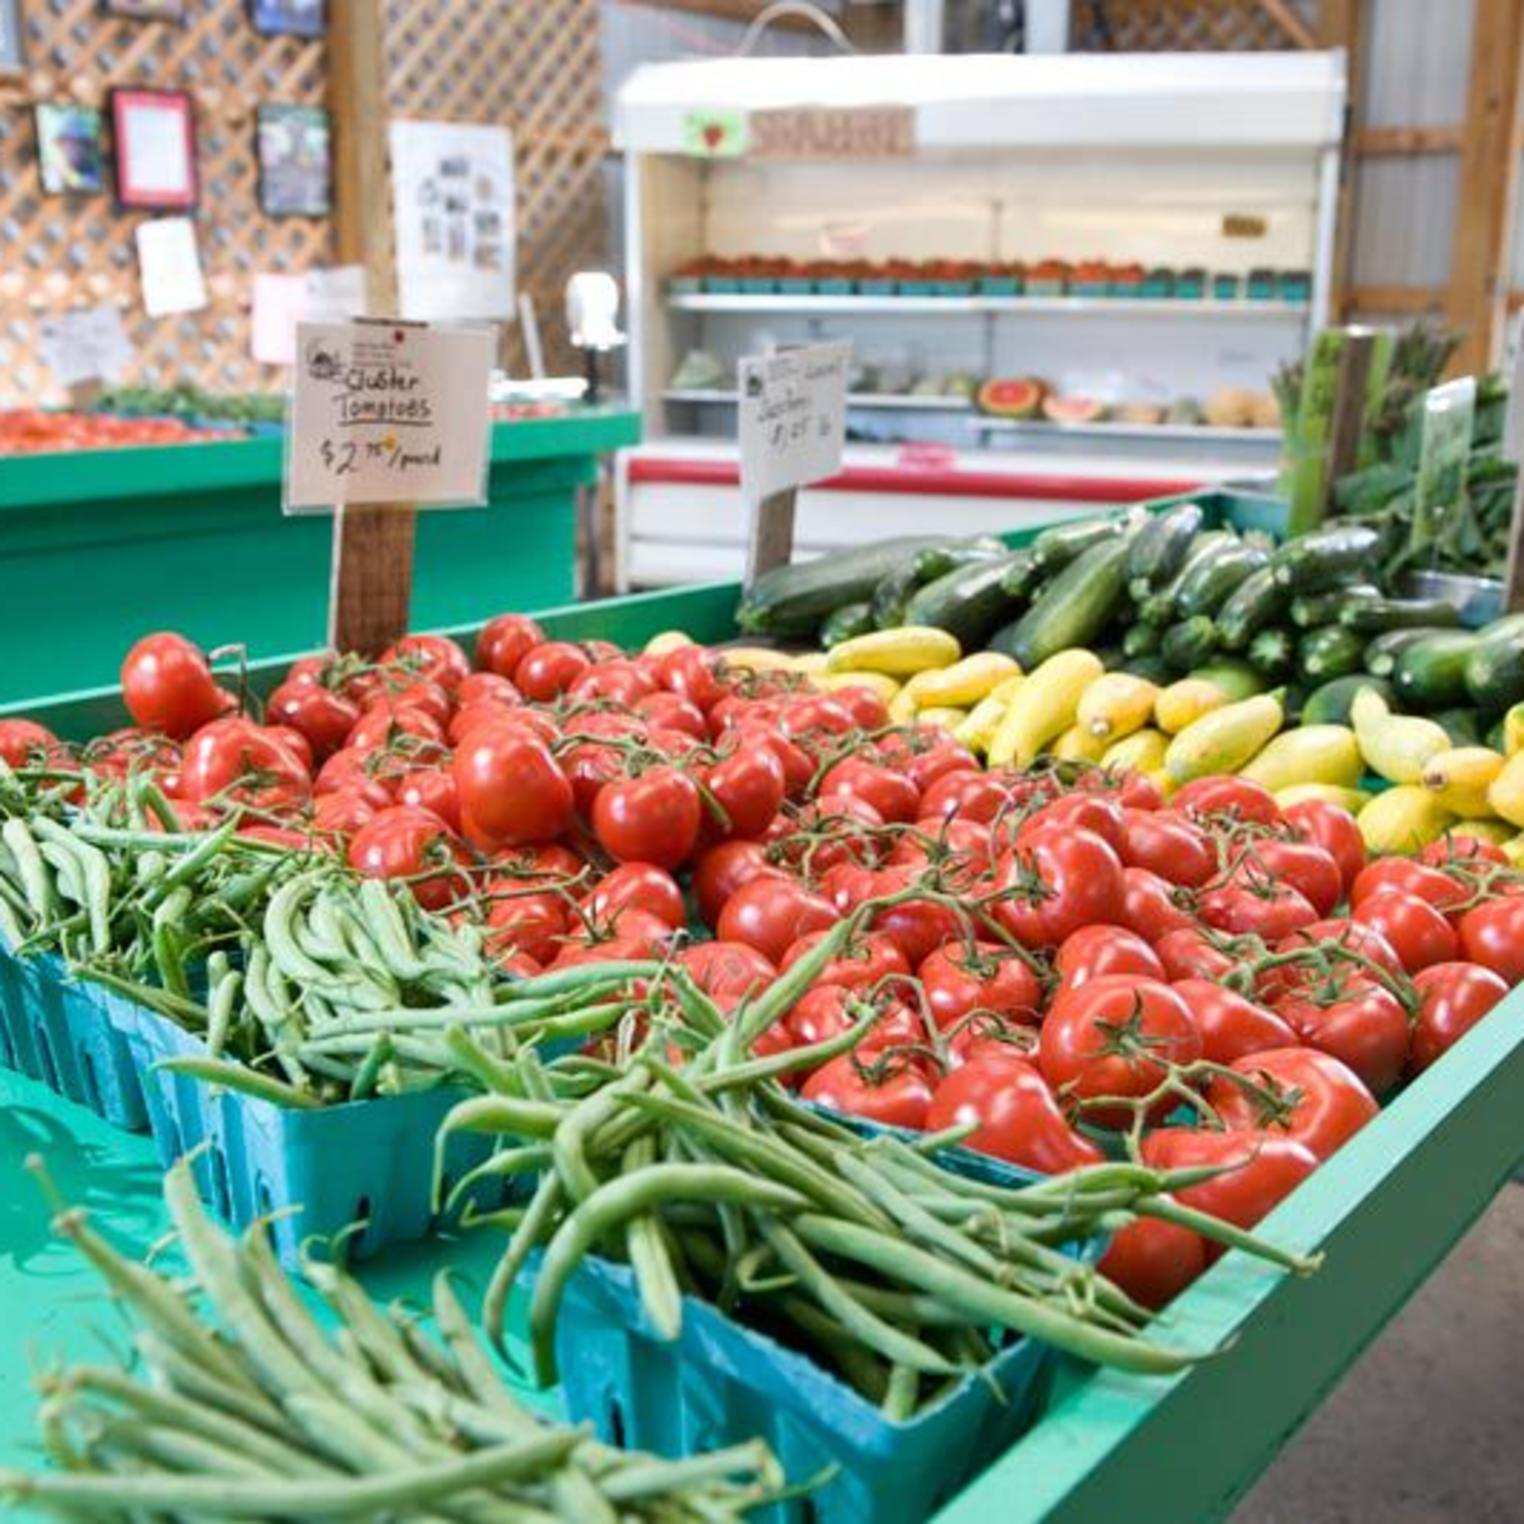 Produce at Paulus Farm Market